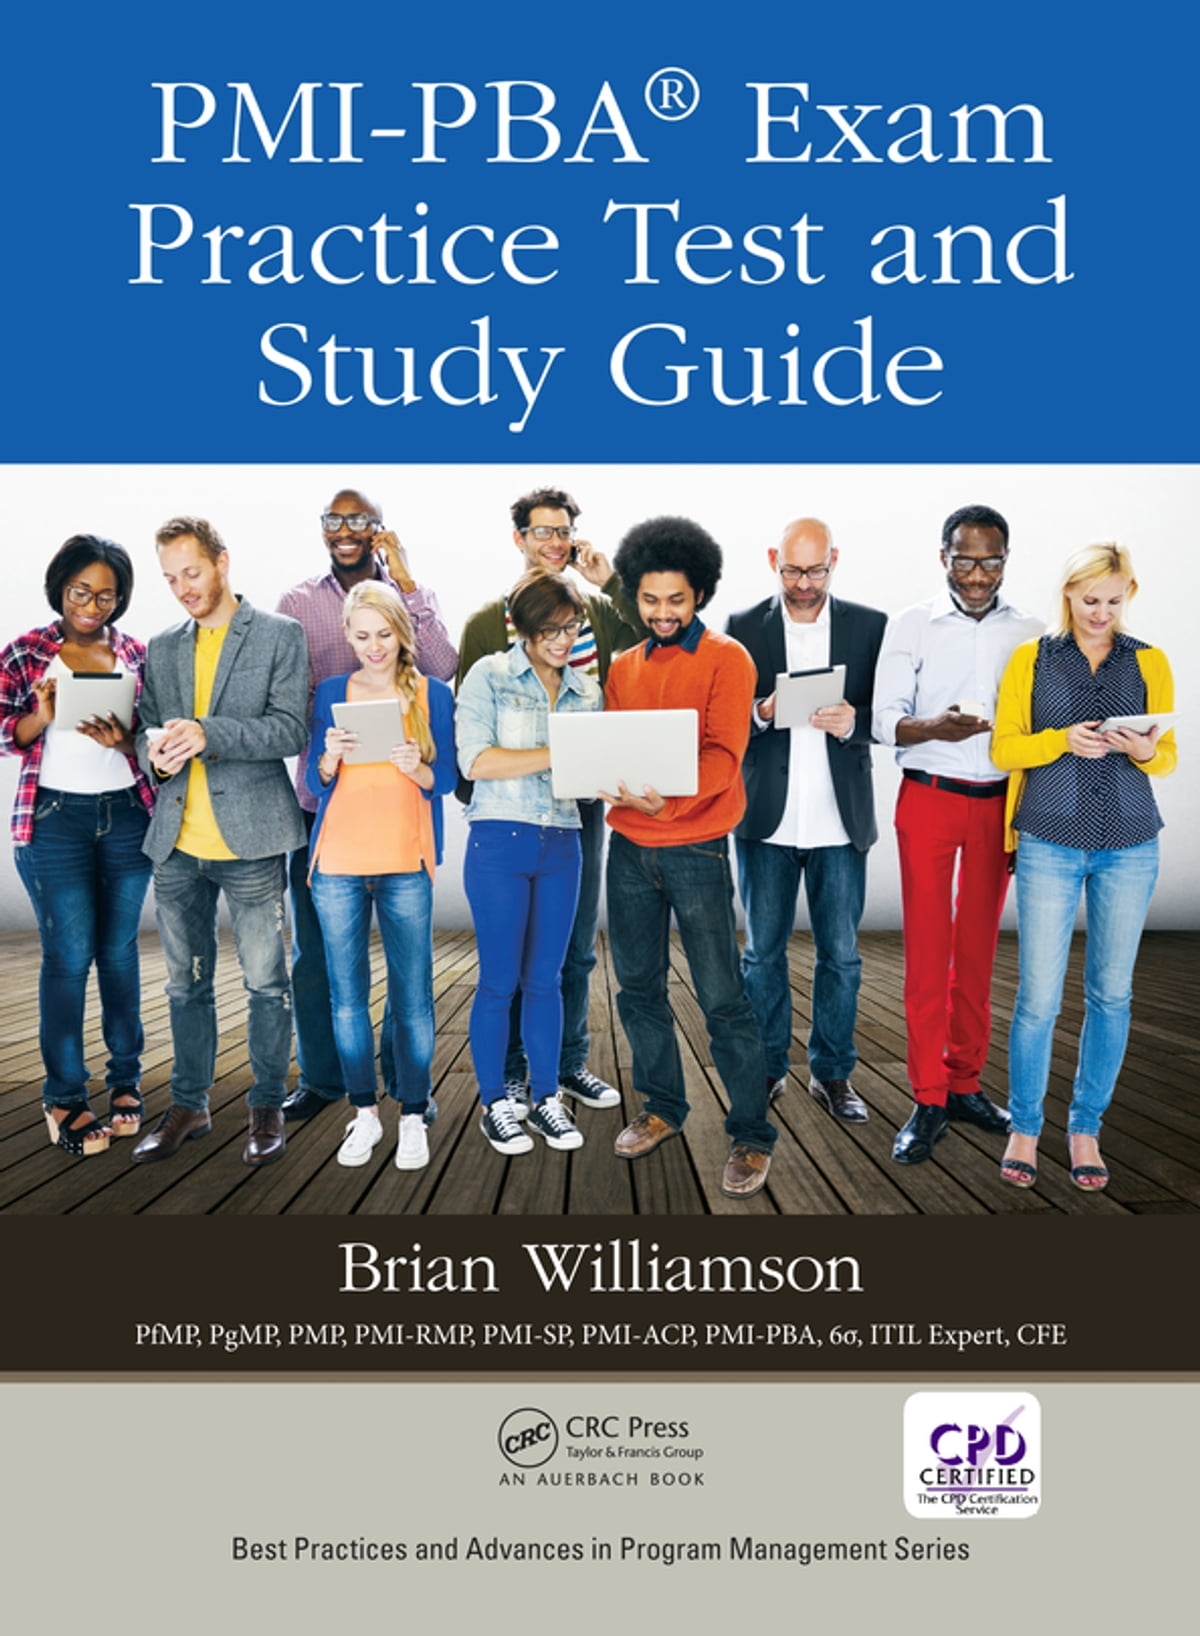 PMI-PBA® Exam Practice Test and Study Guide eBook by Brian Williamson -  9781351681070 | Rakuten Kobo